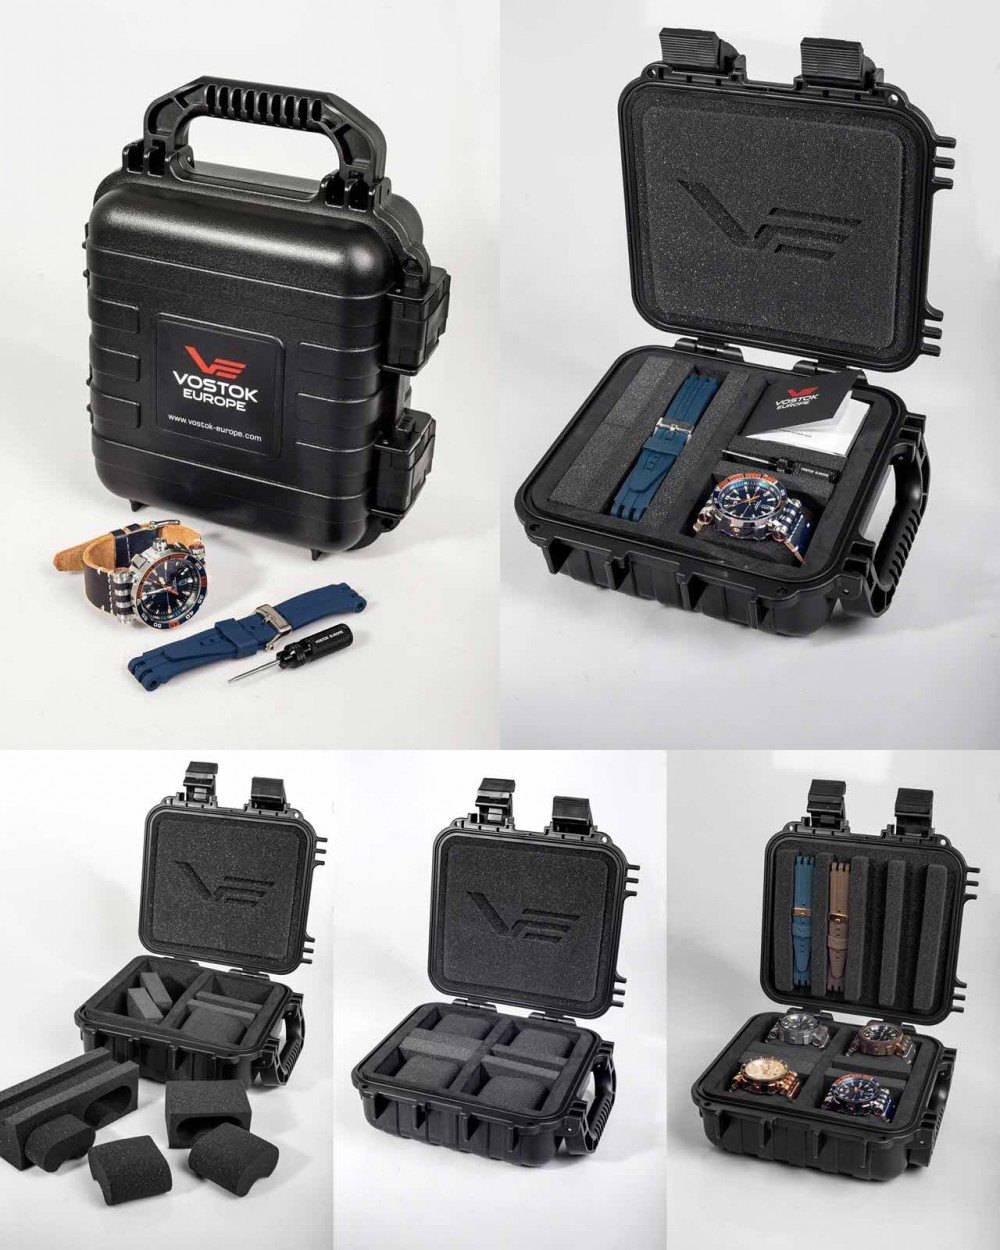 Vostok-Europe Energia 2 hard case